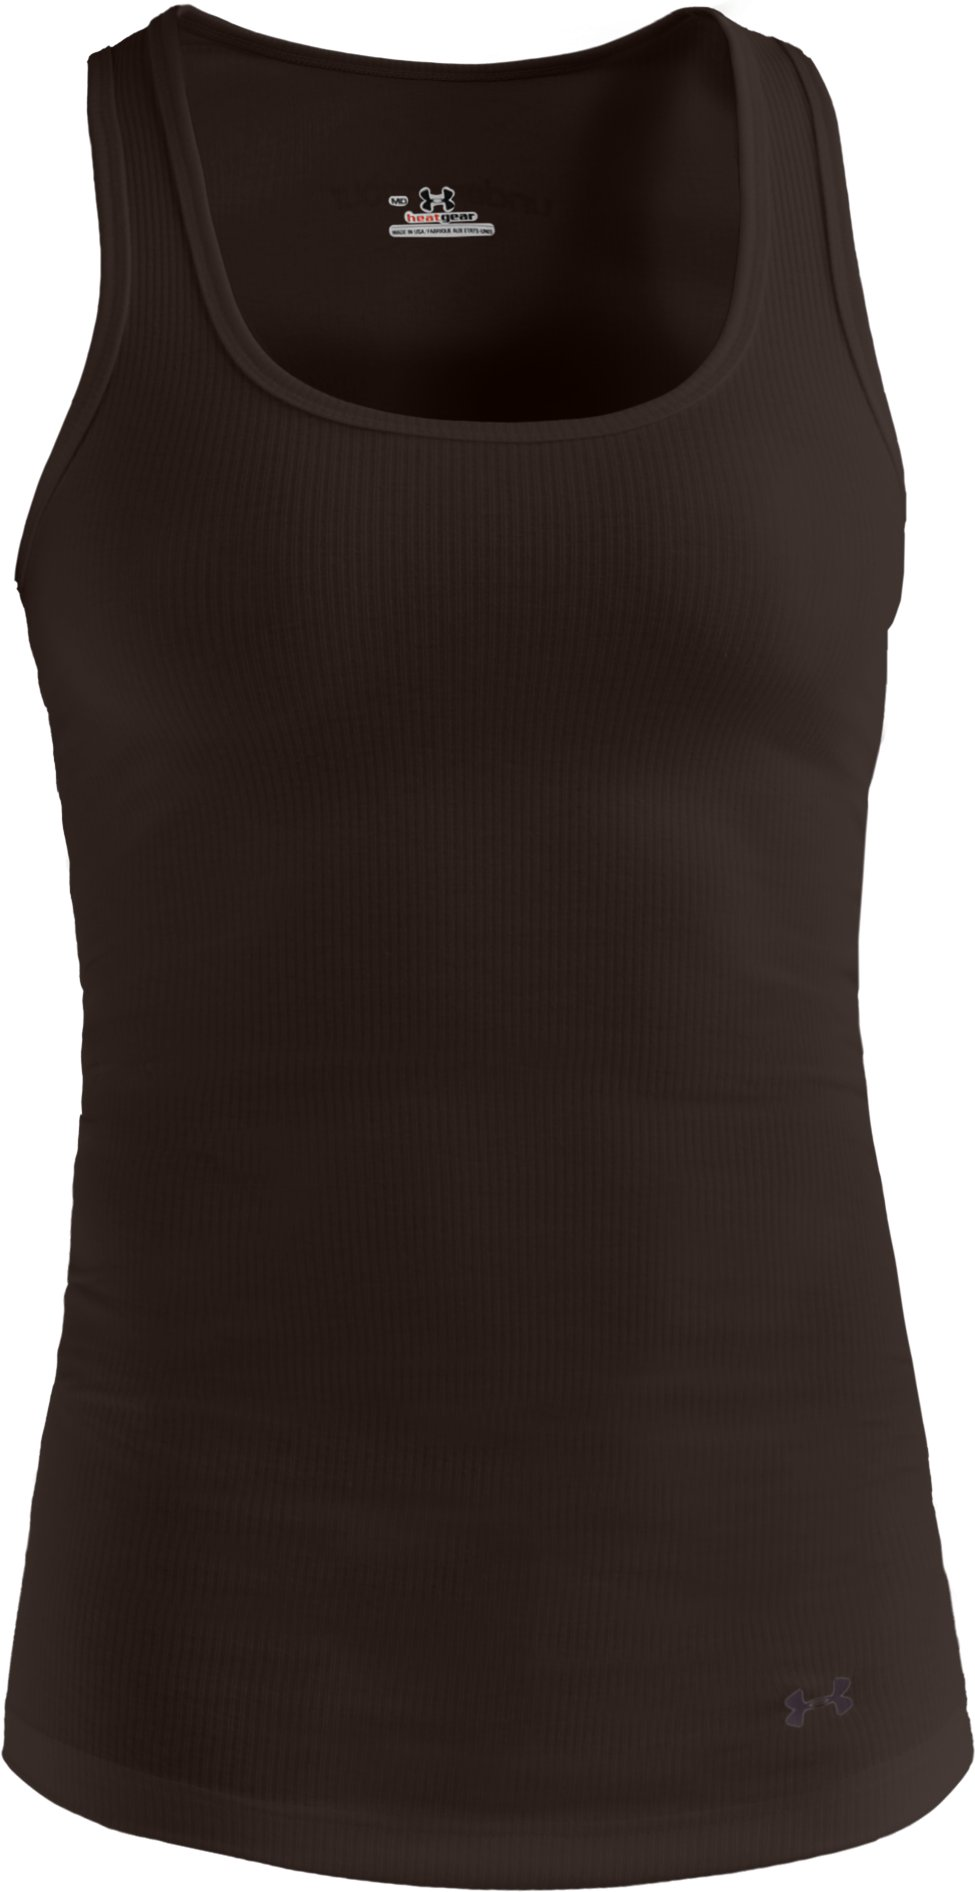 Women's Rib Tank Top, Bureau, undefined